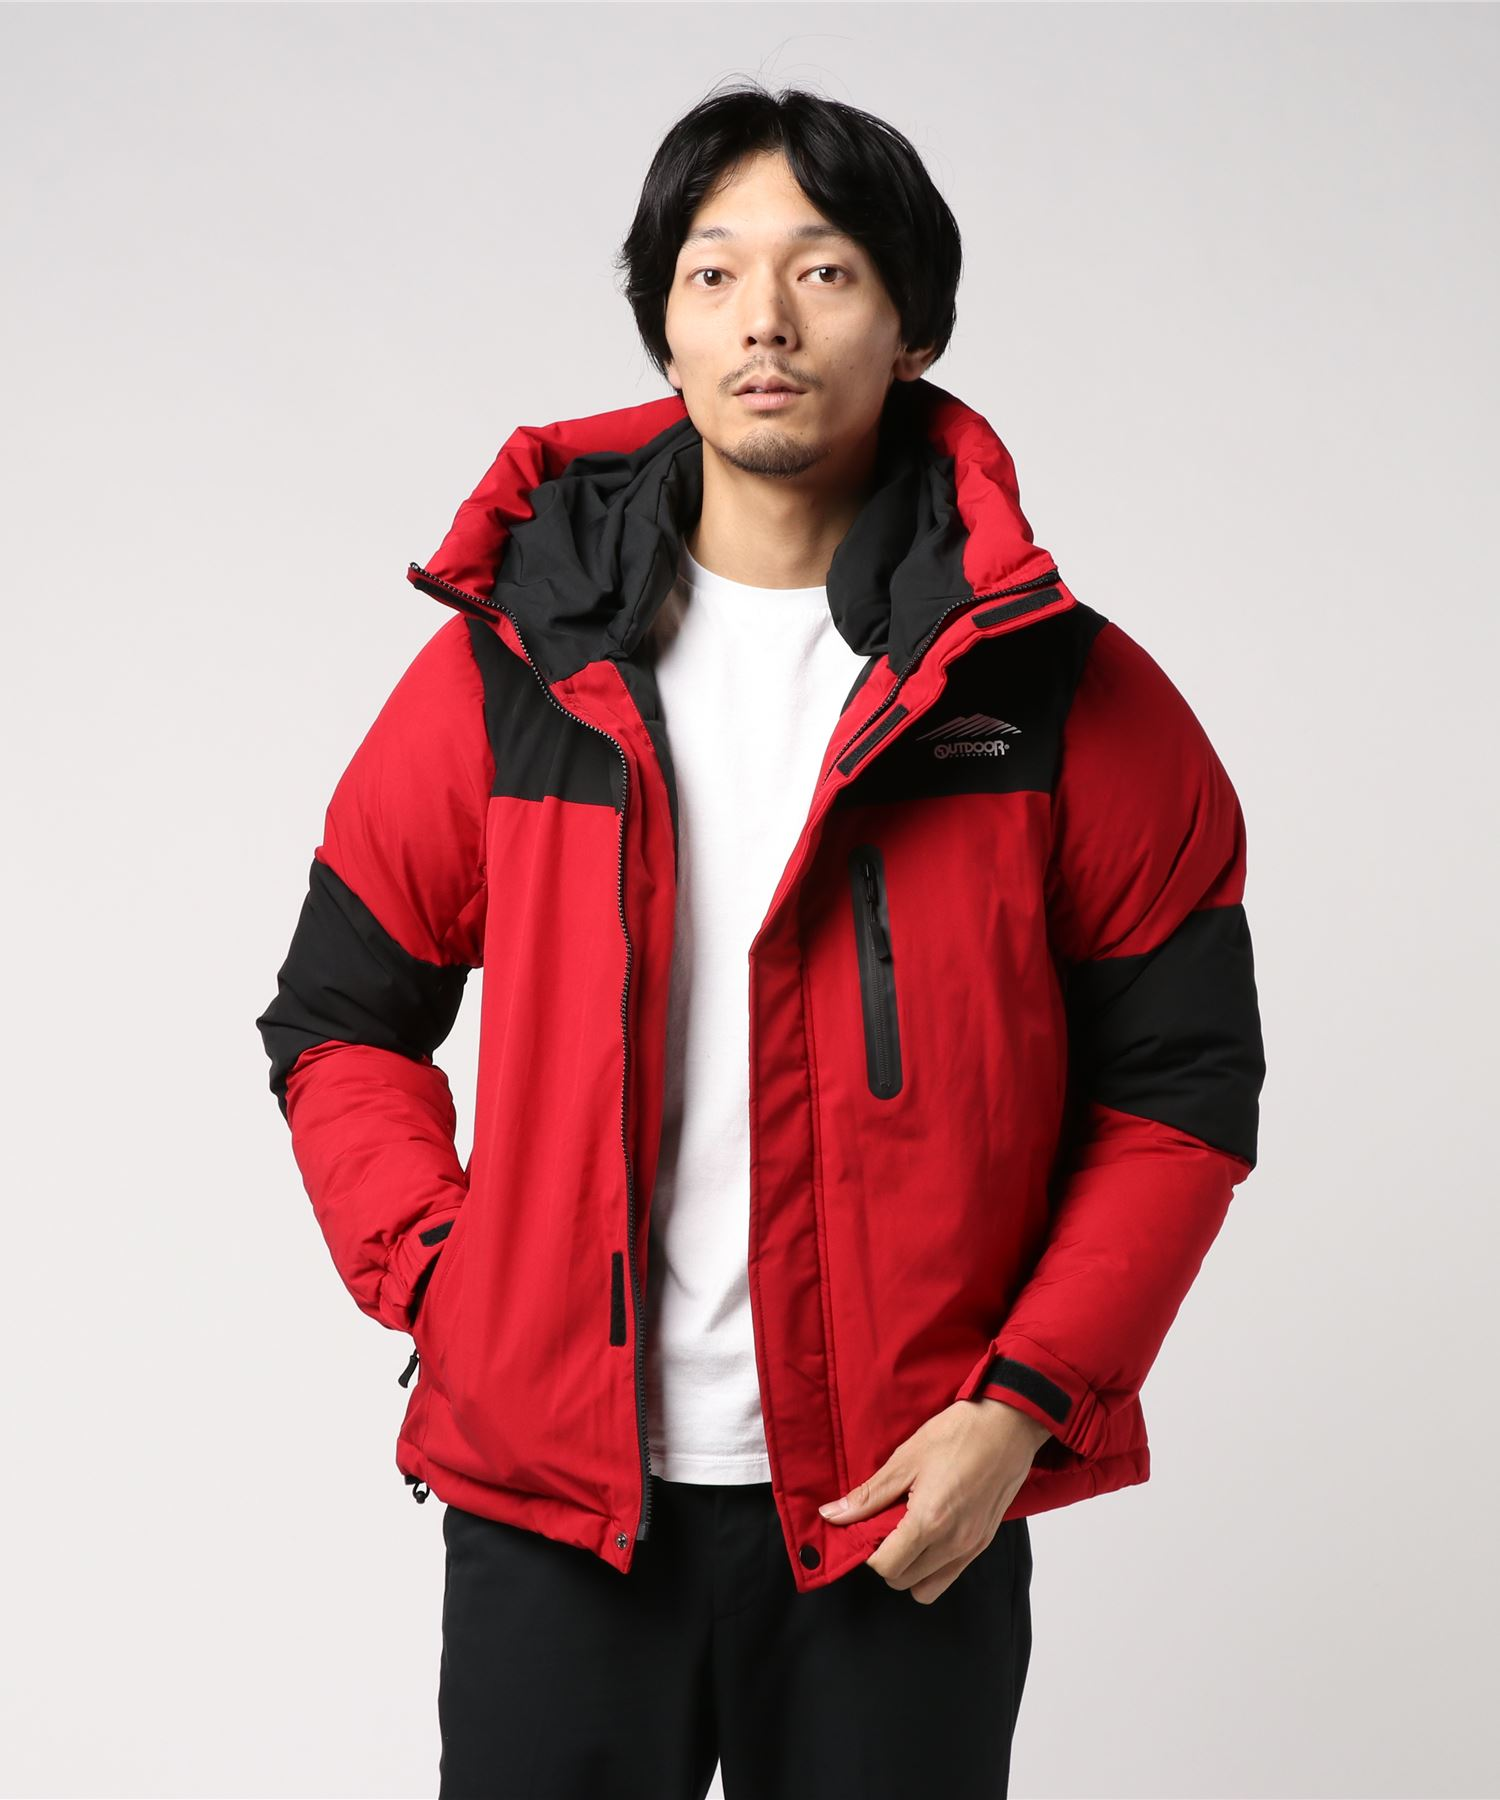 【OUTDOOR PRODUCTS】【GO OUT12月号掲載】切替フード中綿ジャケット ファイバーダウン 防風 ストレッチ 撥水加工 止水ファスナー